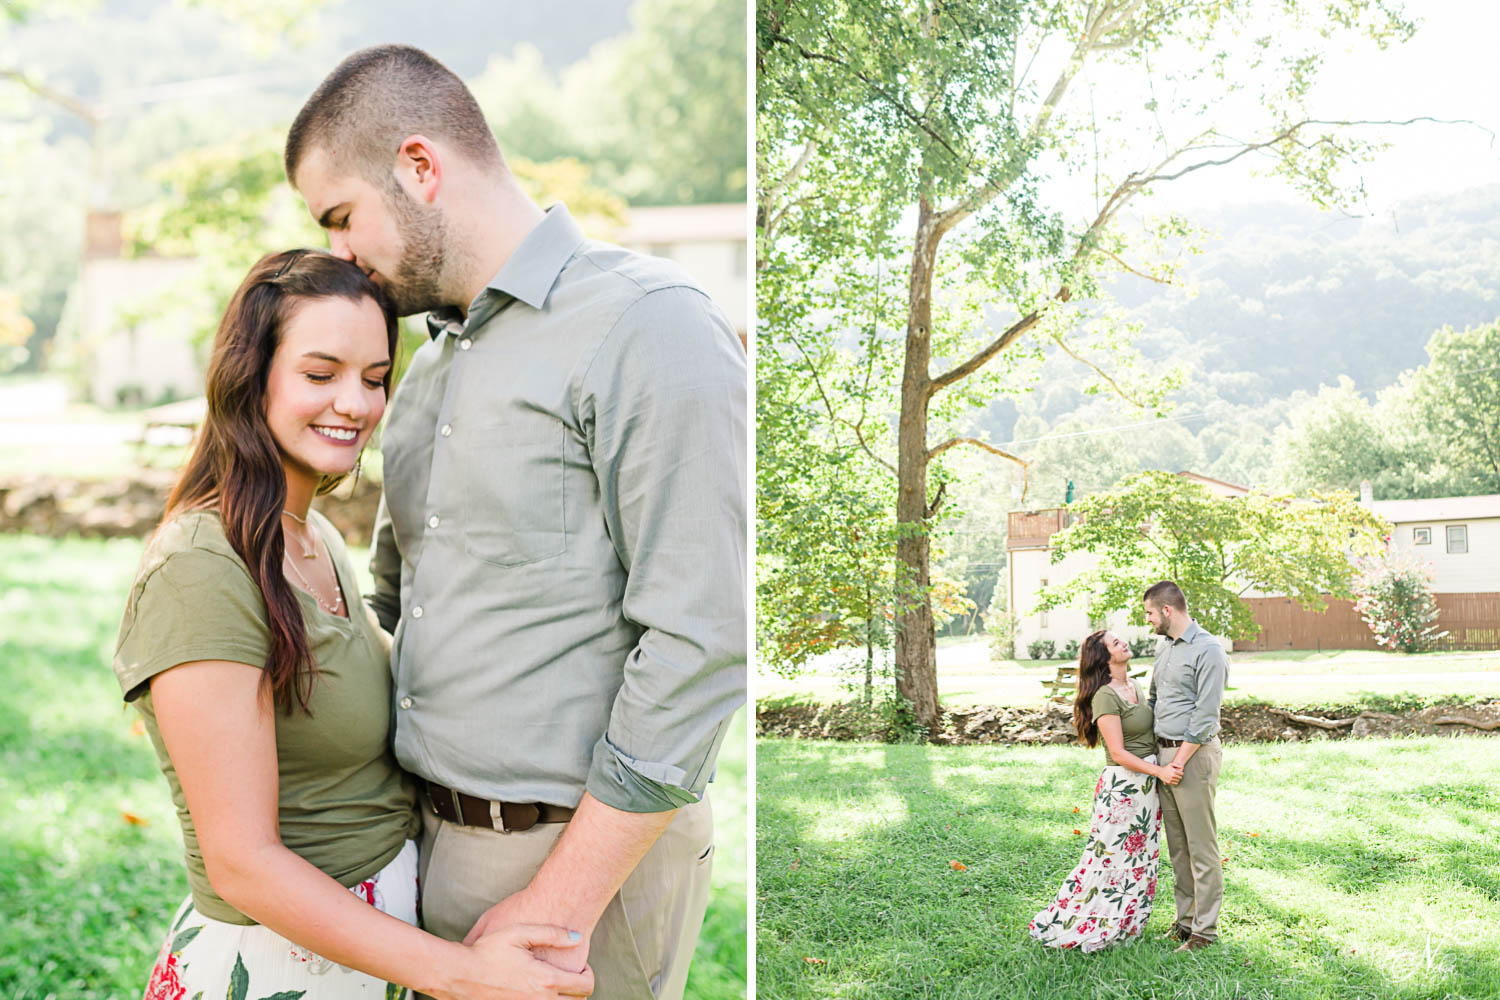 girl in olive colored shirt and guy in gray button down holding hands outside at golden hour in Cumberland Gap TN. And tall sunlit tree with newly engaged couple under it in August